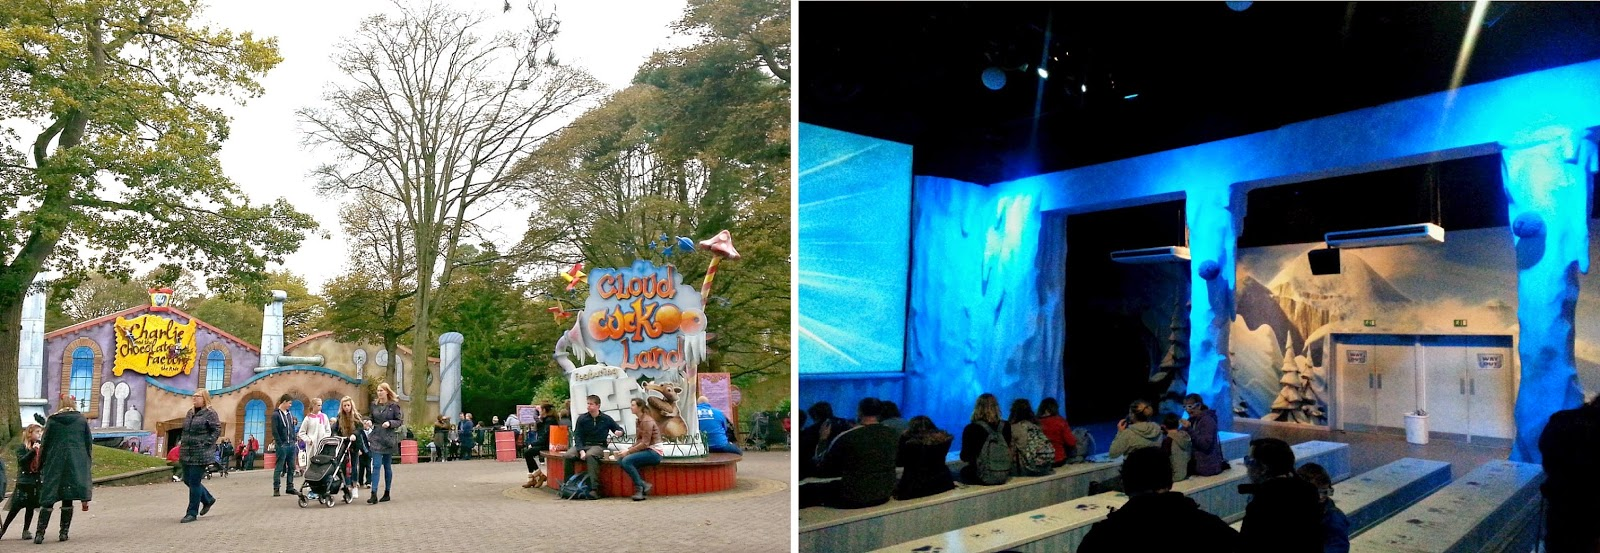 Alton Towers Scarefest, Halloween, CBeebies Land